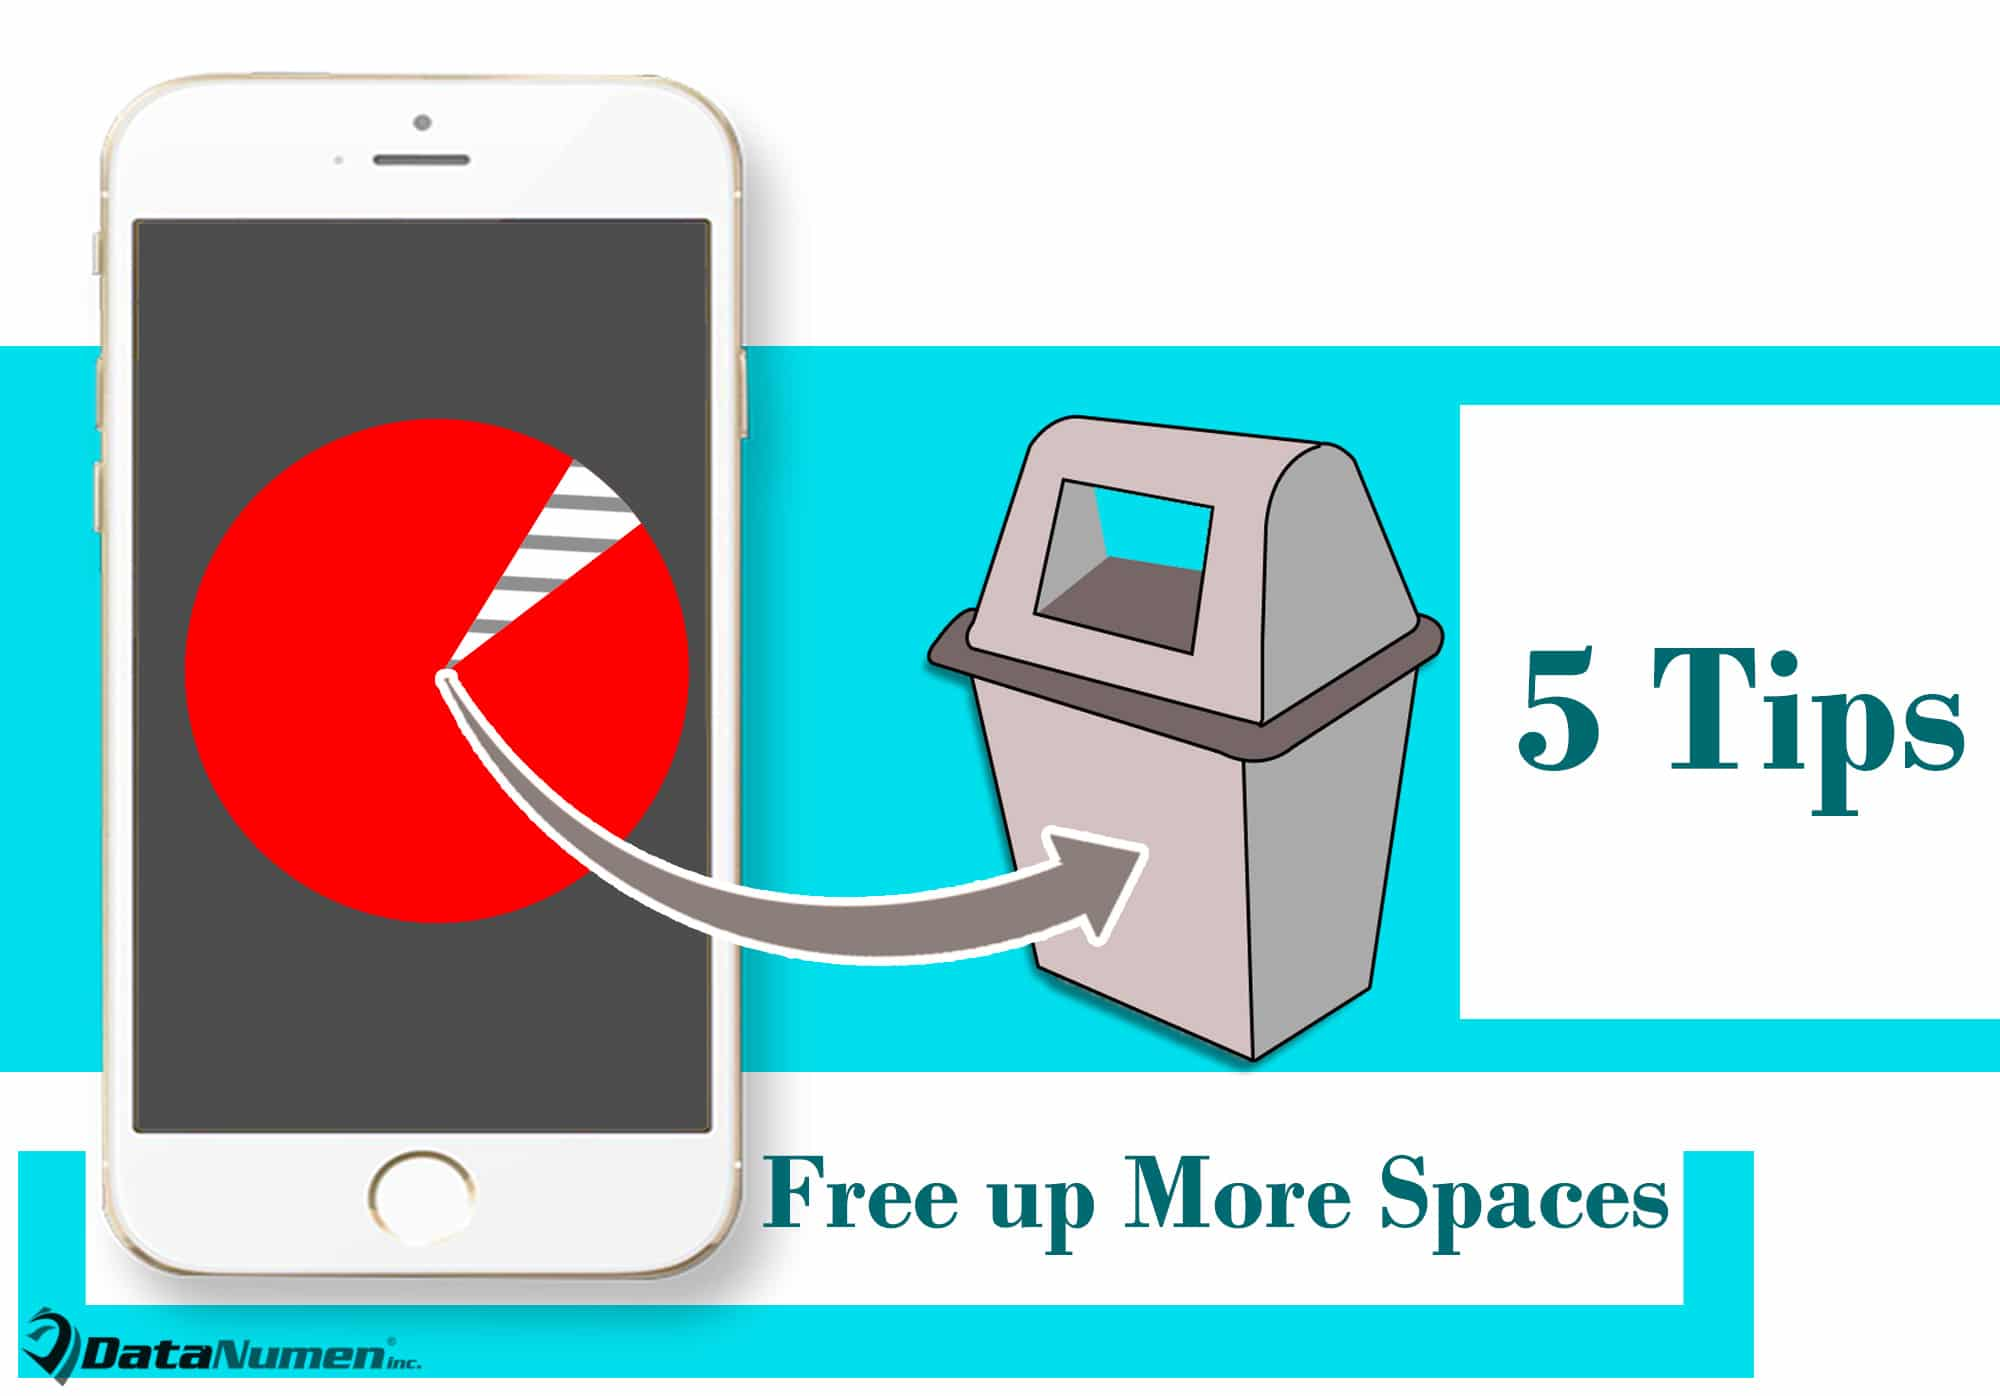 5 Effective Tips to Free up More Spaces on Your Smartphone